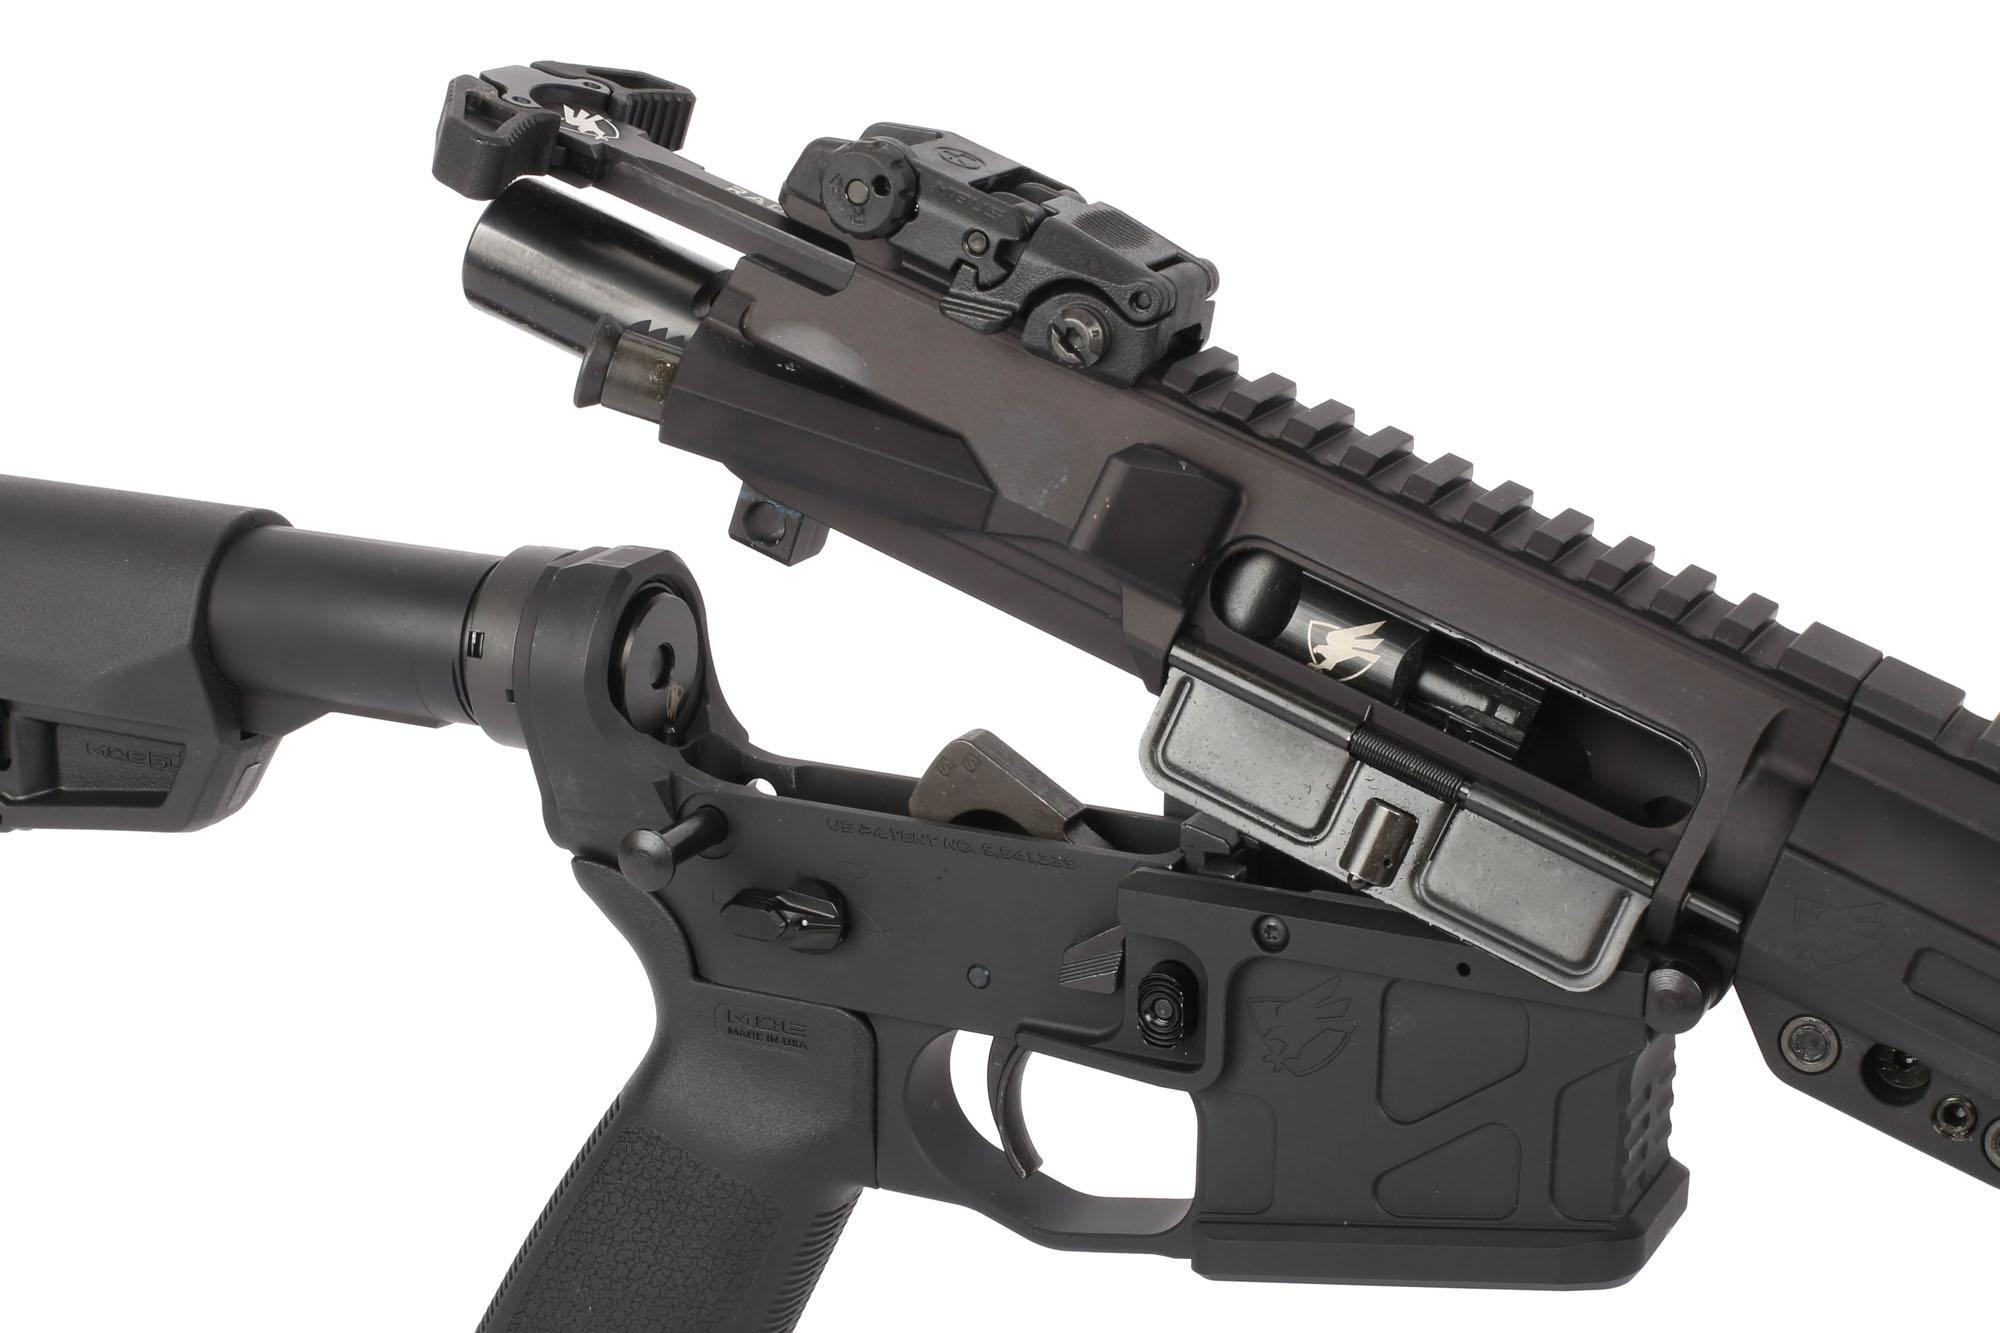 American Defense 16in UIC Mod 1 LE AR-15 Rifle features the Radian Raptor Charging Handle